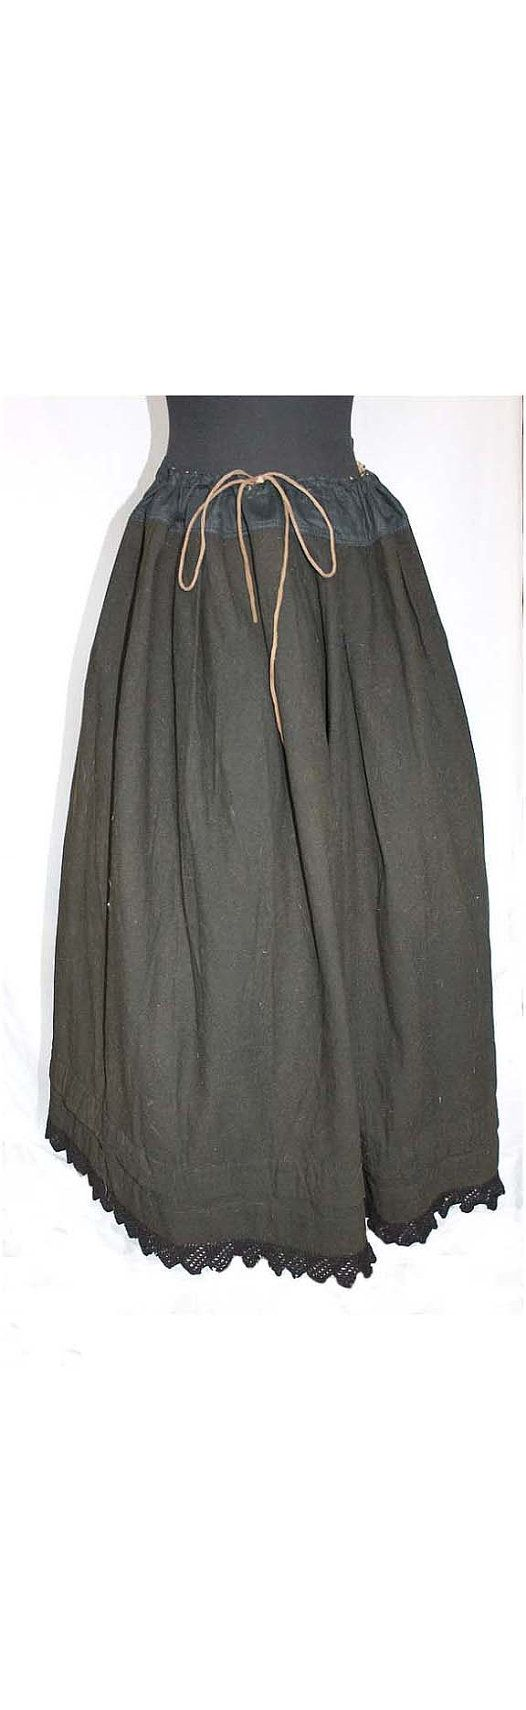 https://www.etsy.com/listing/276021360/plus-size-skirt-reenactment-clothing?ga_search_query=skirt&ref=shop_items_search_4 To be or not to be, that is the question. Reenactment skirt & ALL VINTAGE is 25% off. Coupon code is THANKS